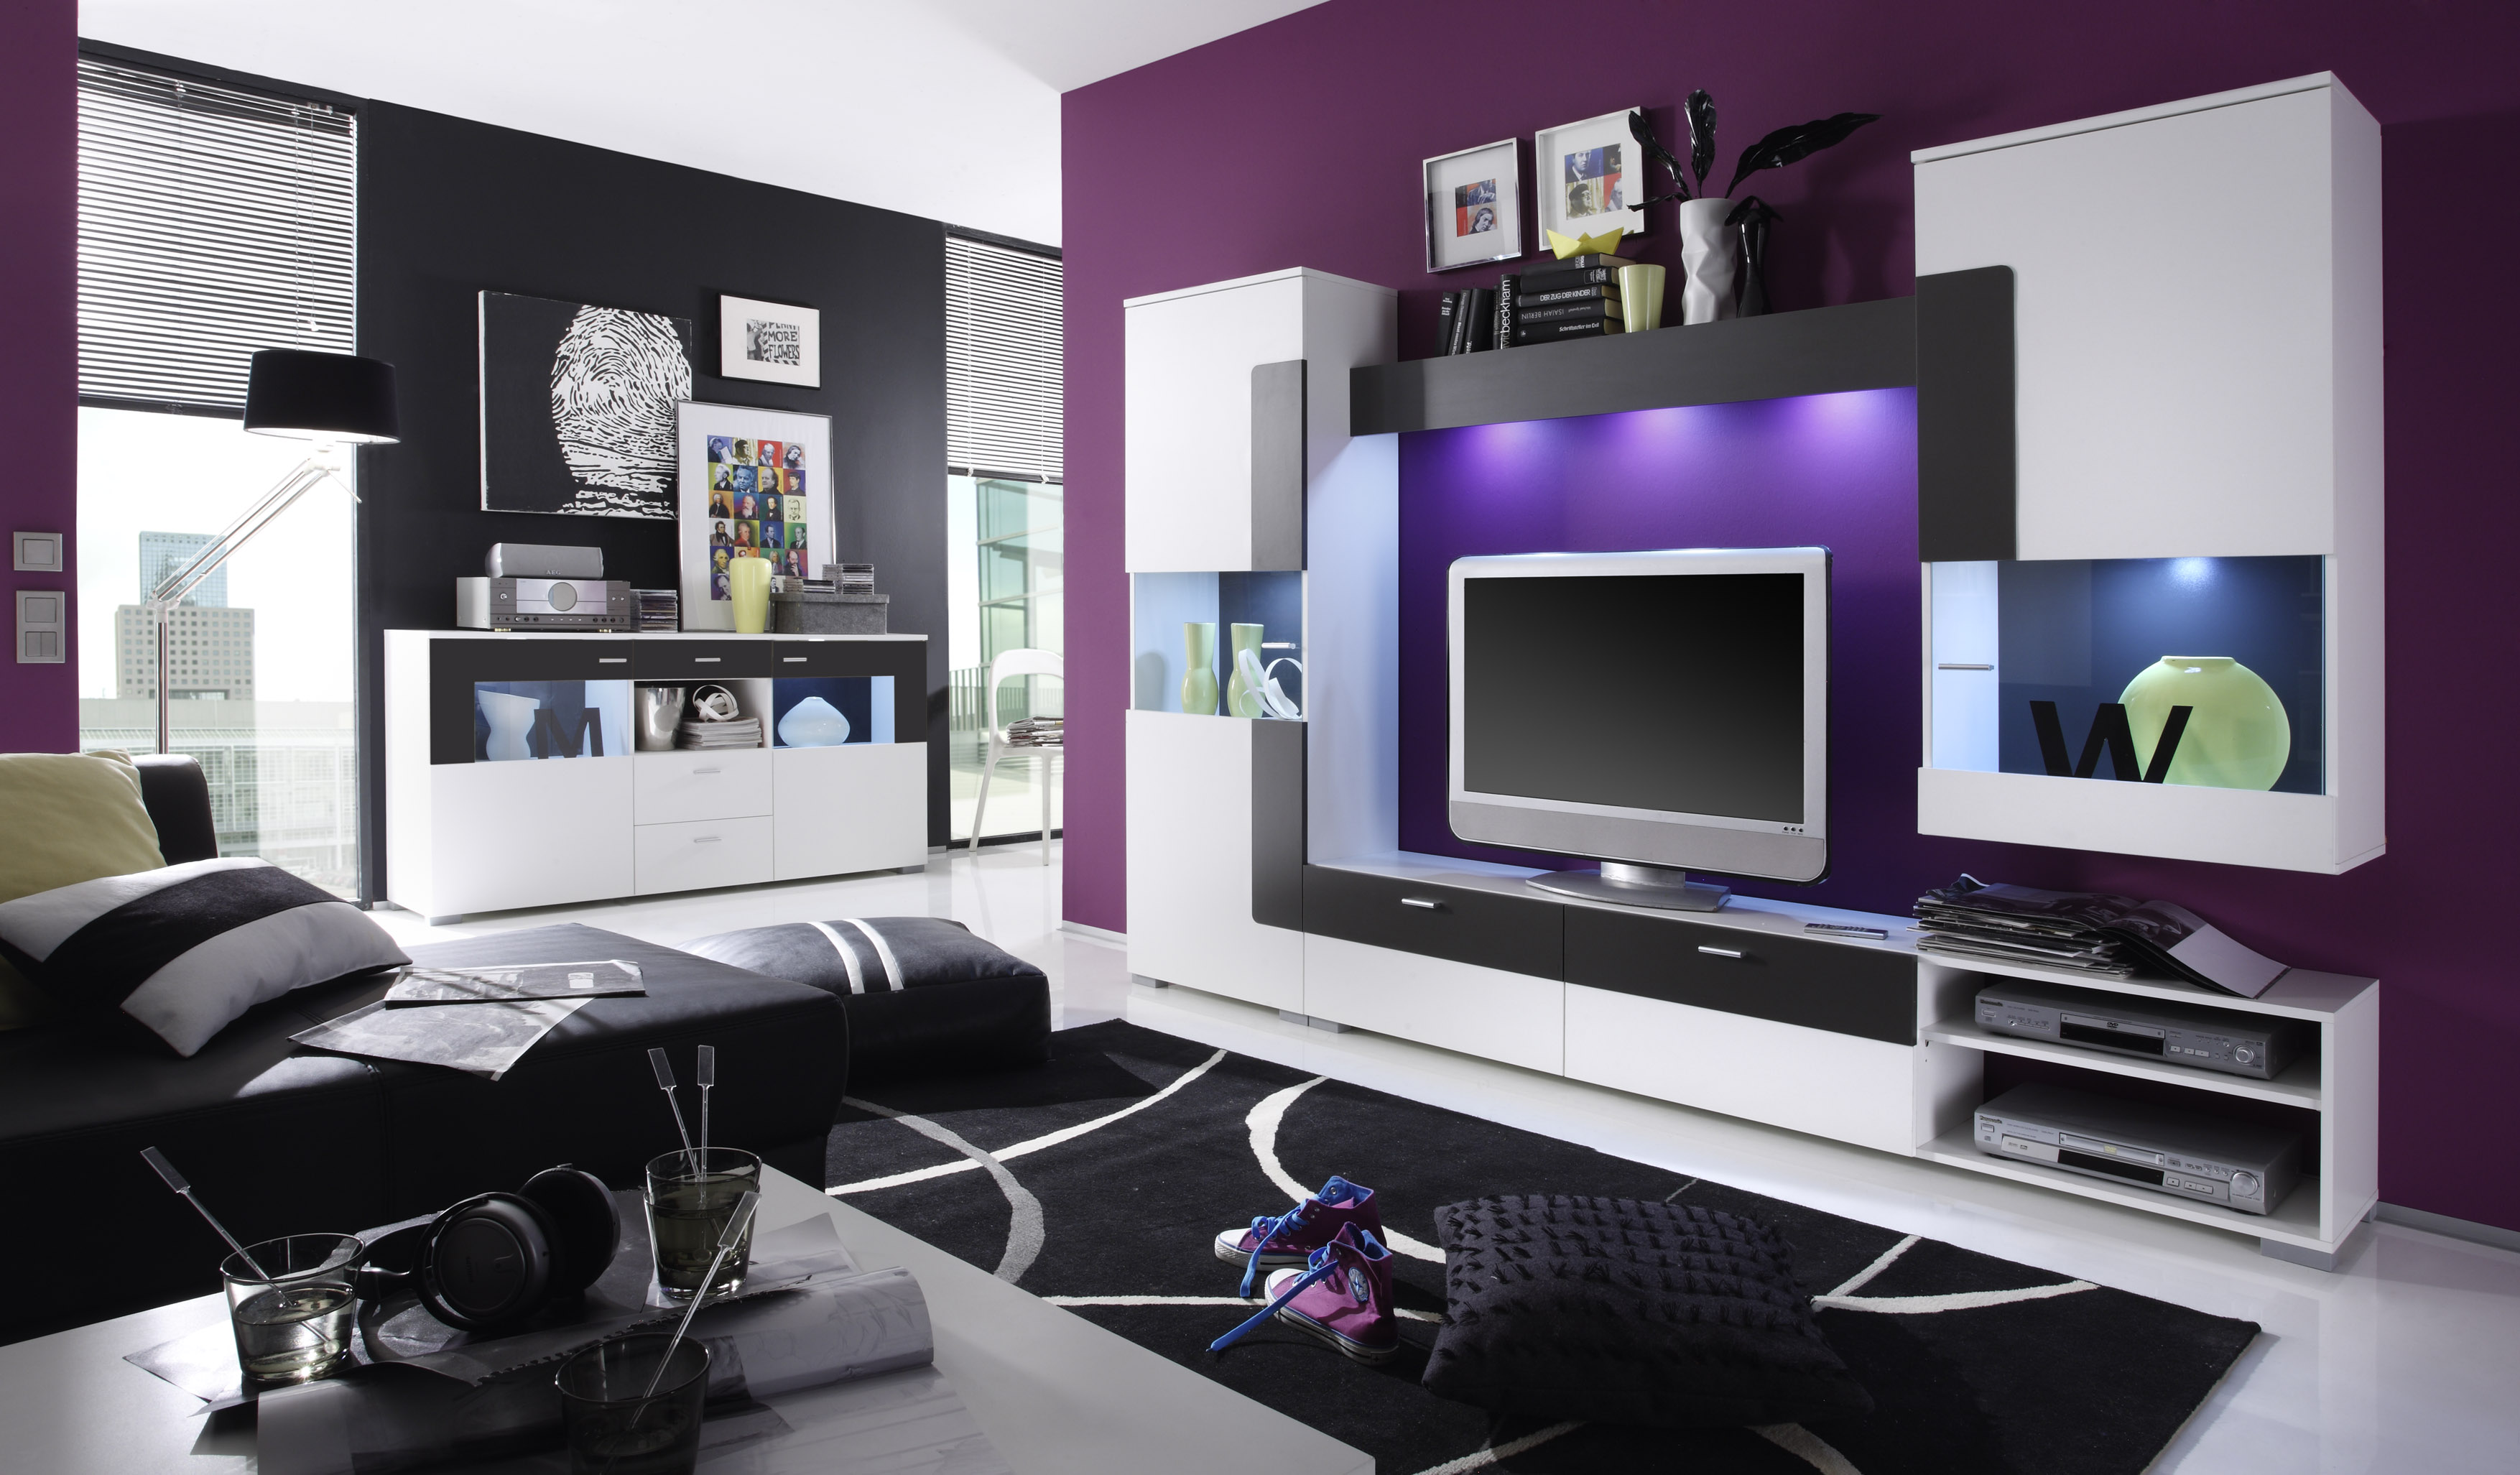 memphis wohnwand wei abs anthrazit preiswert bestellen sch ne m bel online kaufen. Black Bedroom Furniture Sets. Home Design Ideas